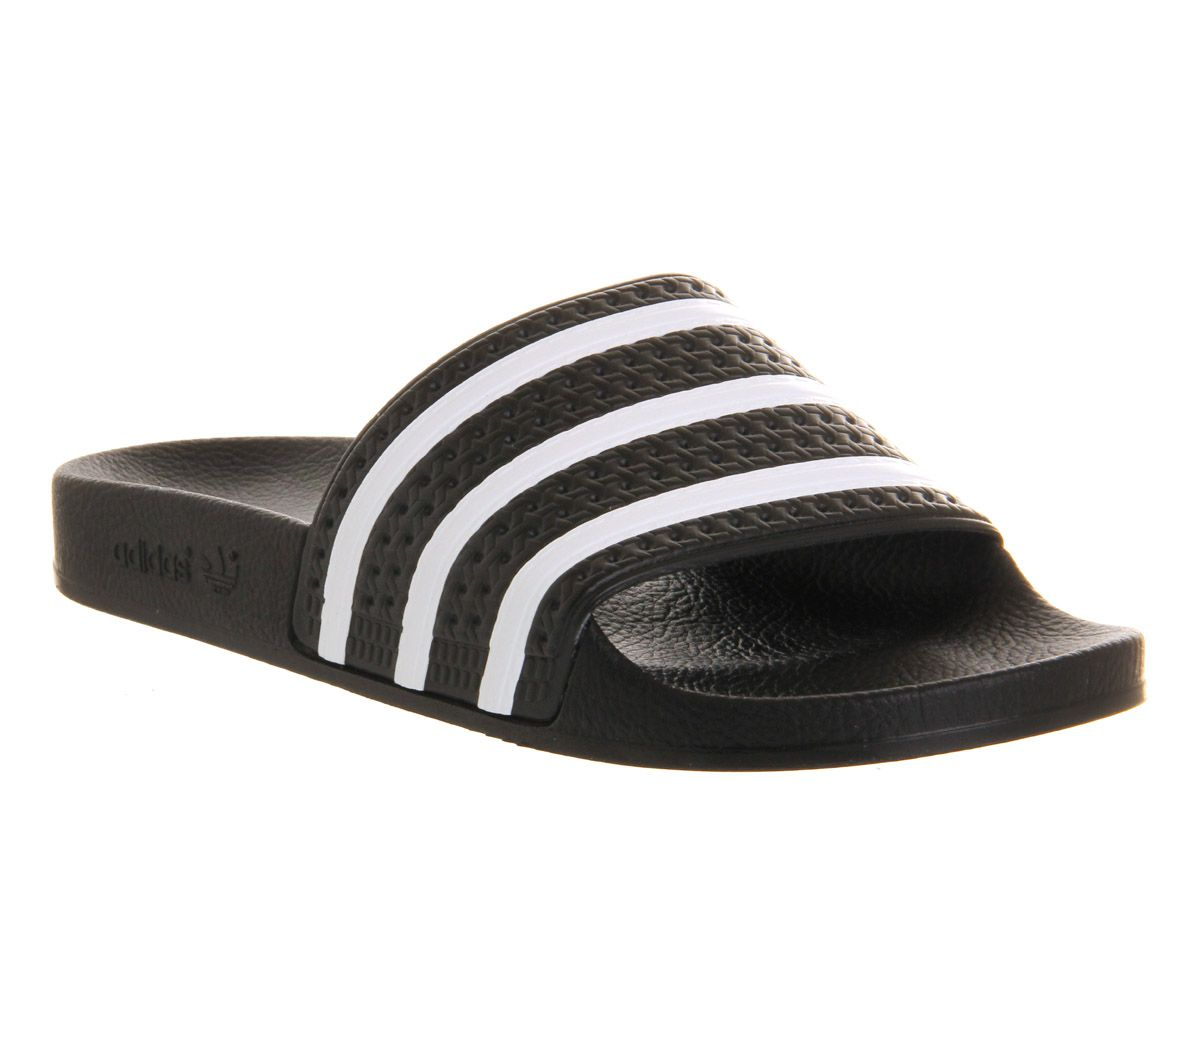 1c22051b3 adidas Adilette Sliders Black White - Office Girl